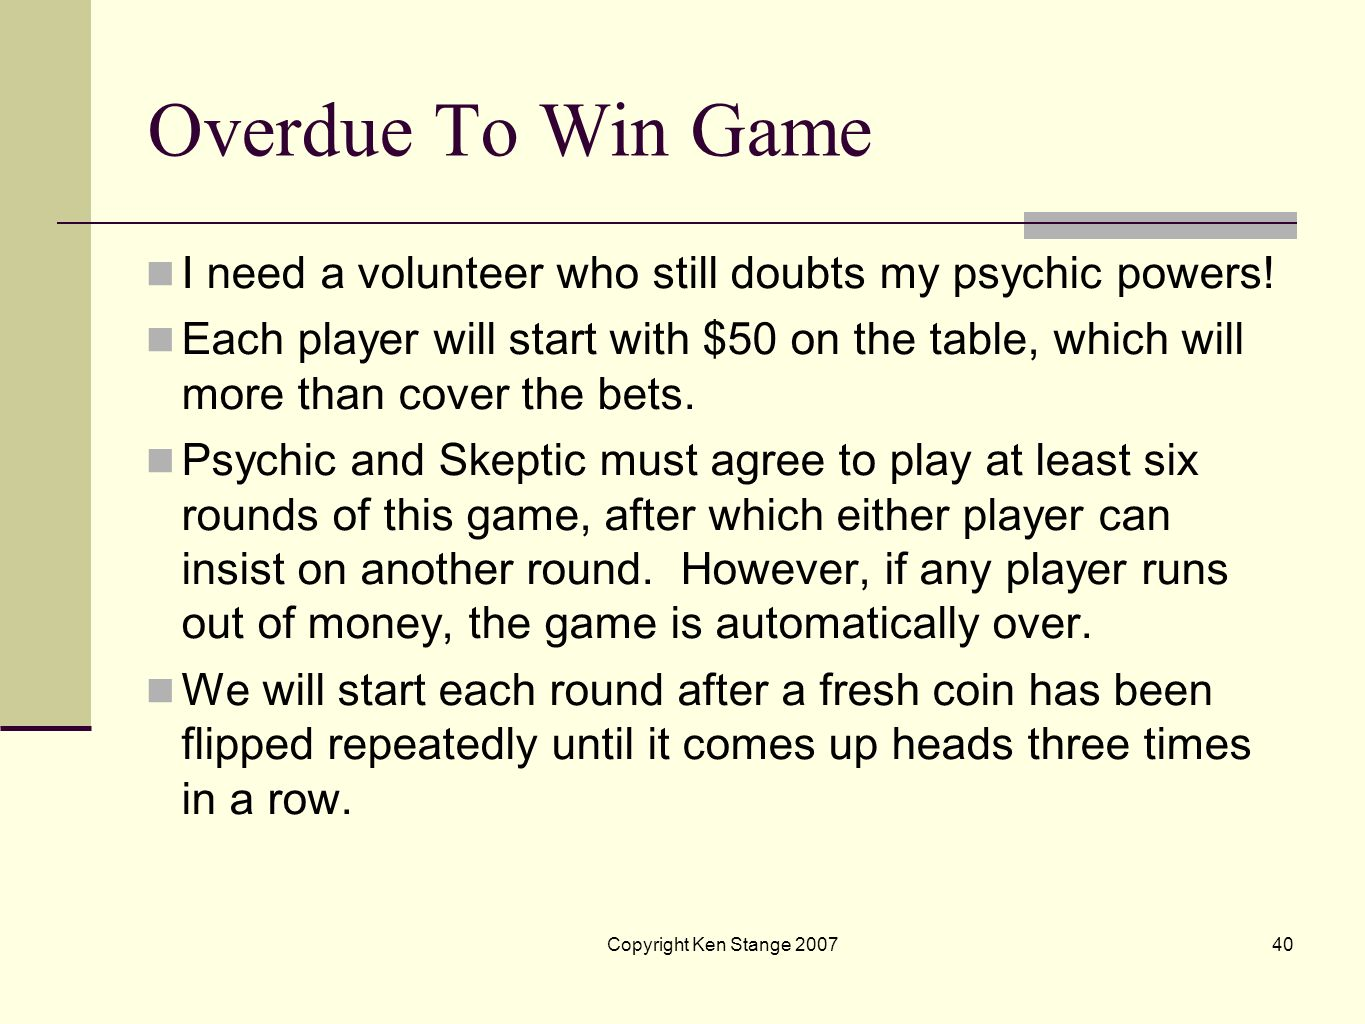 Overdue To Win GameI need a volunteer who still doubts my psychic powers!